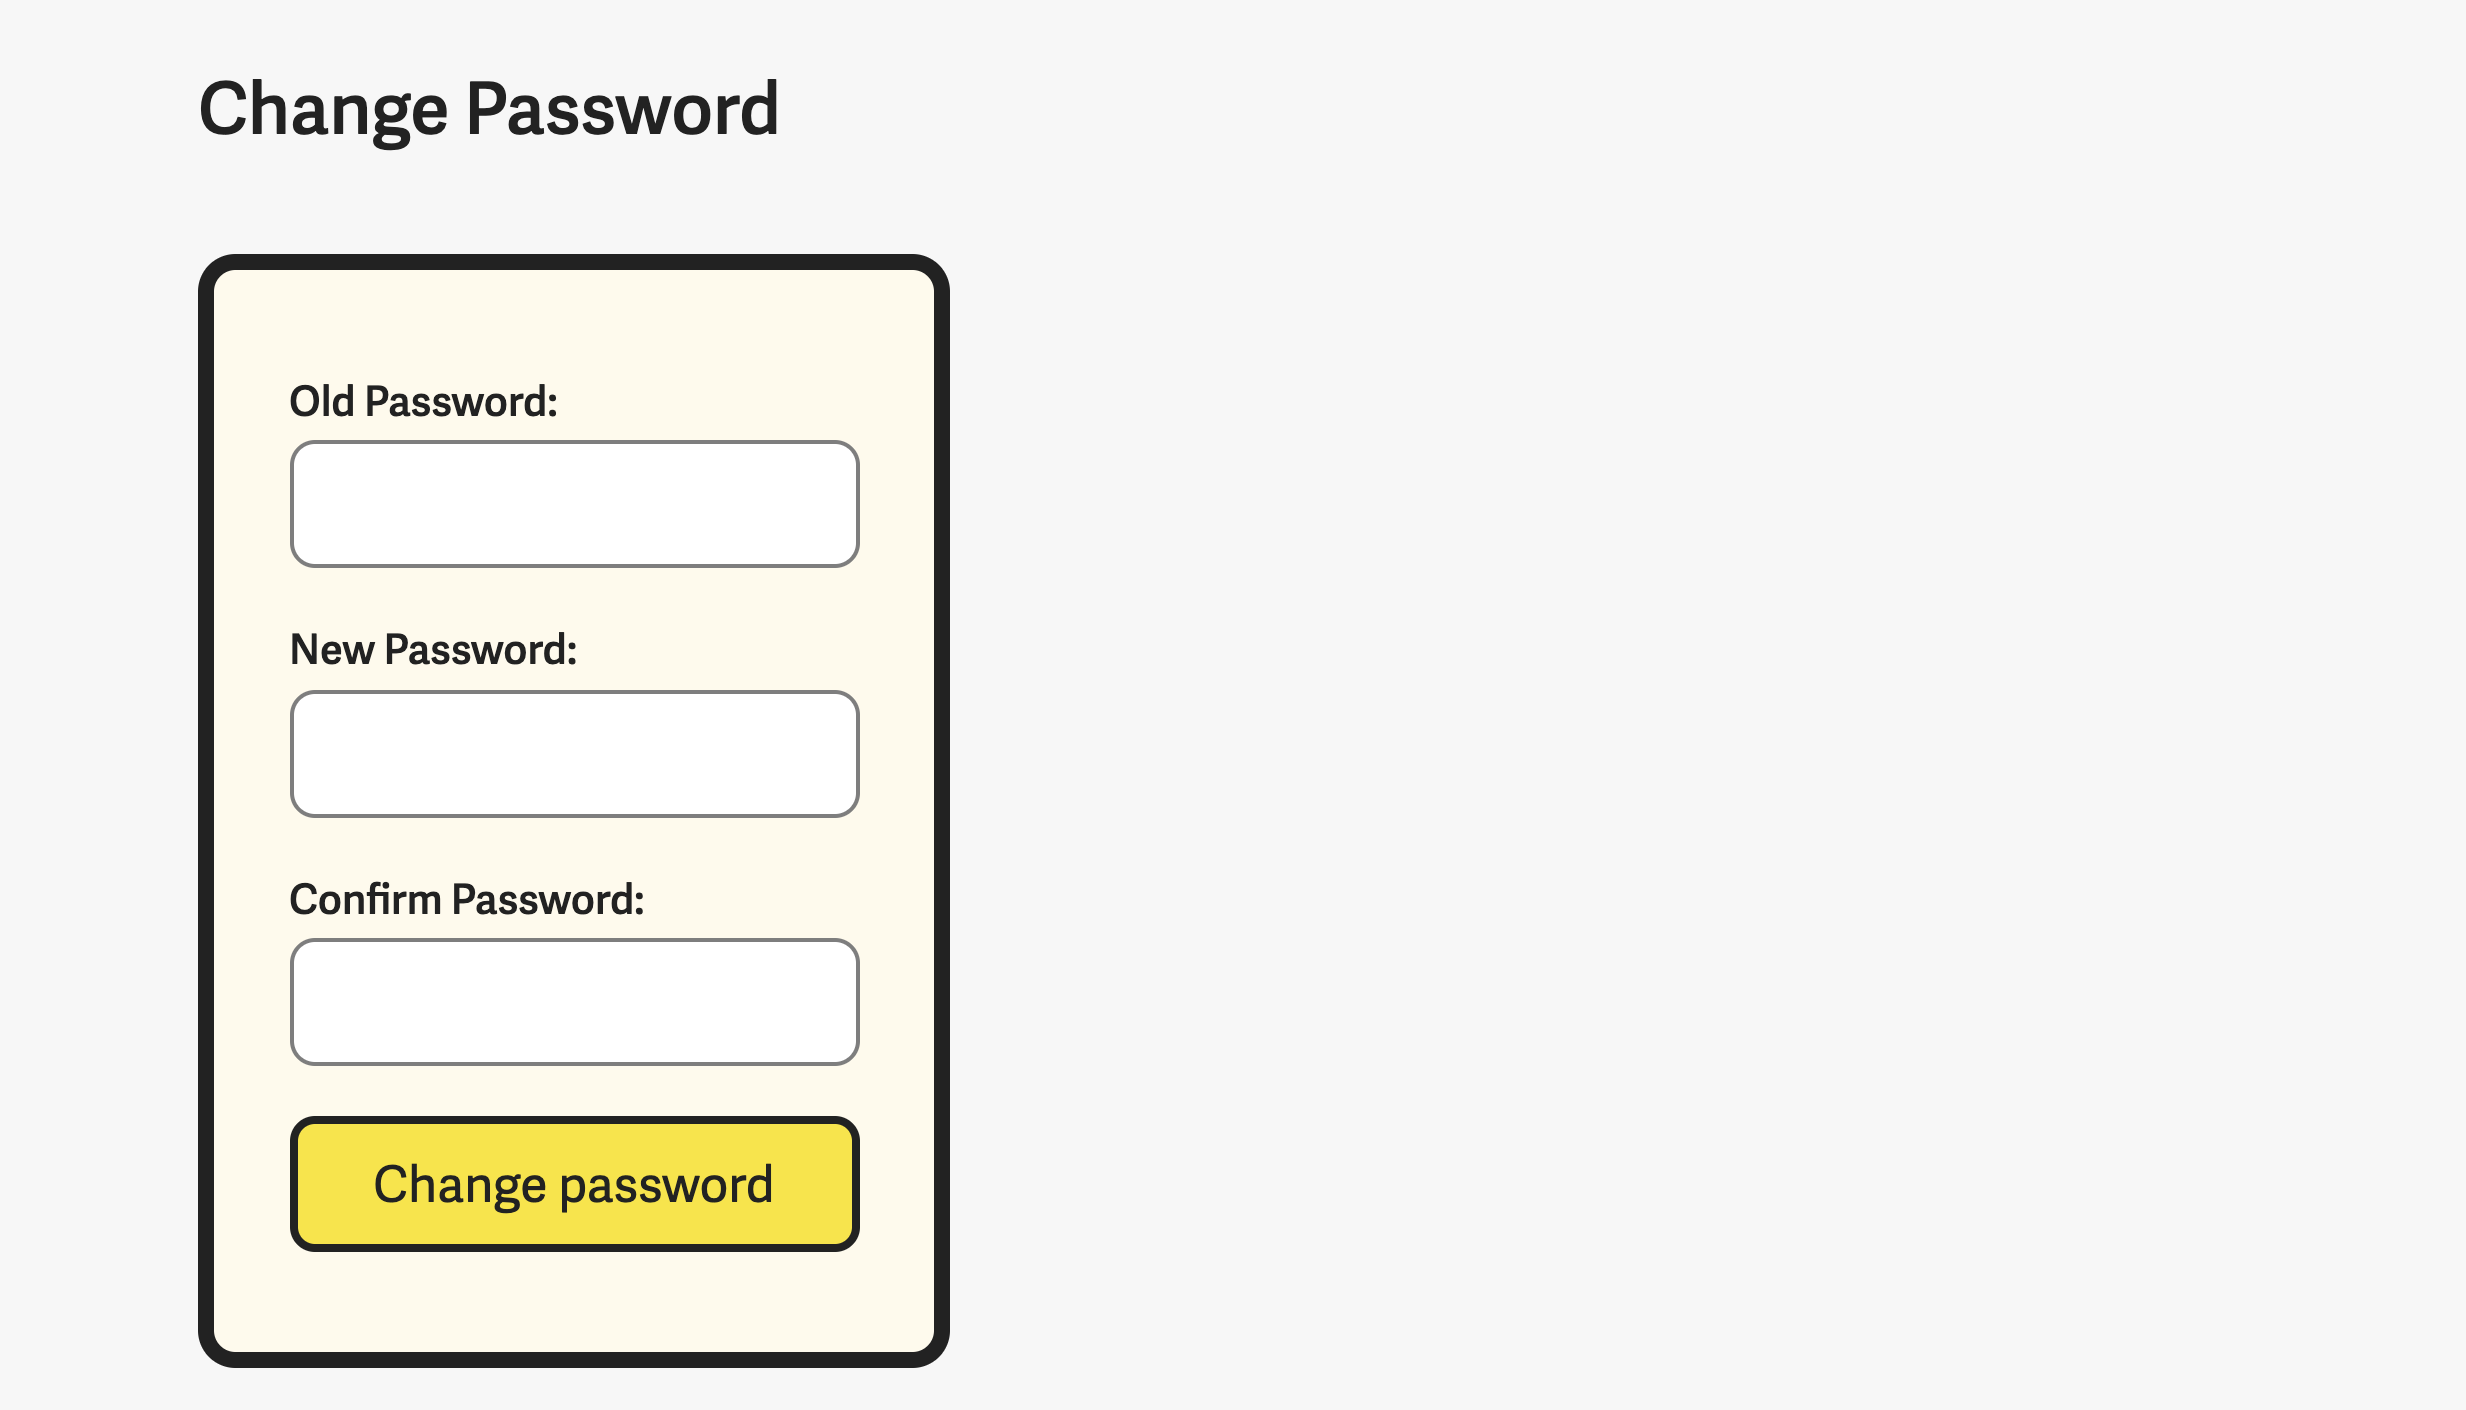 Password fields in a single column.